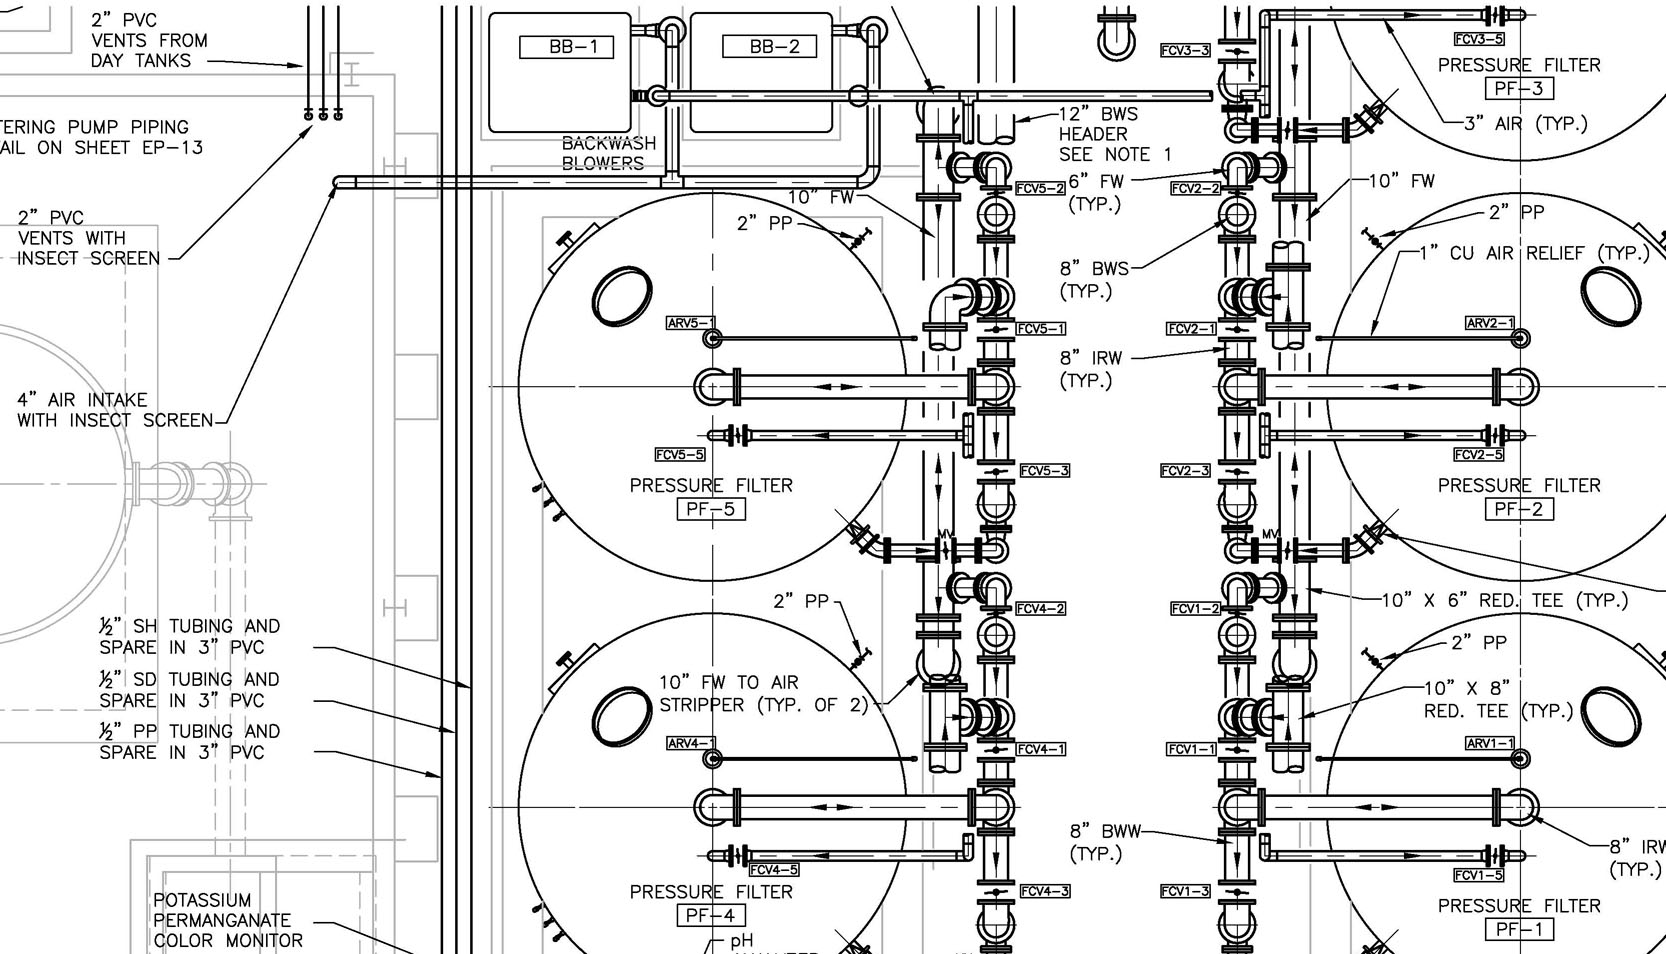 medium resolution of piping layout plan